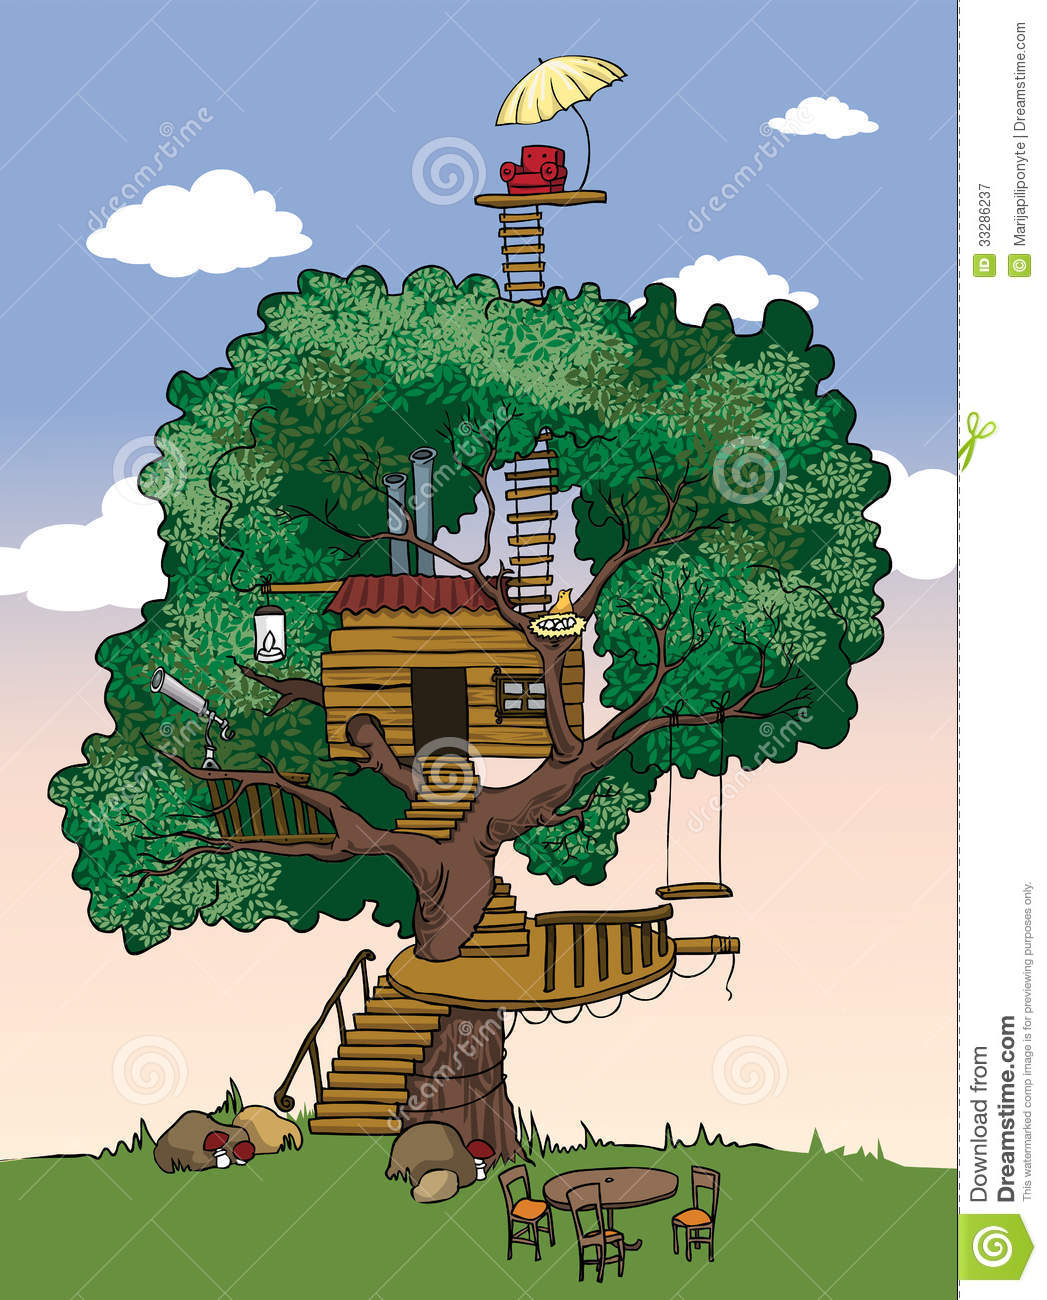 Tree House Royalty Free Stock Photography - Image: 33286237